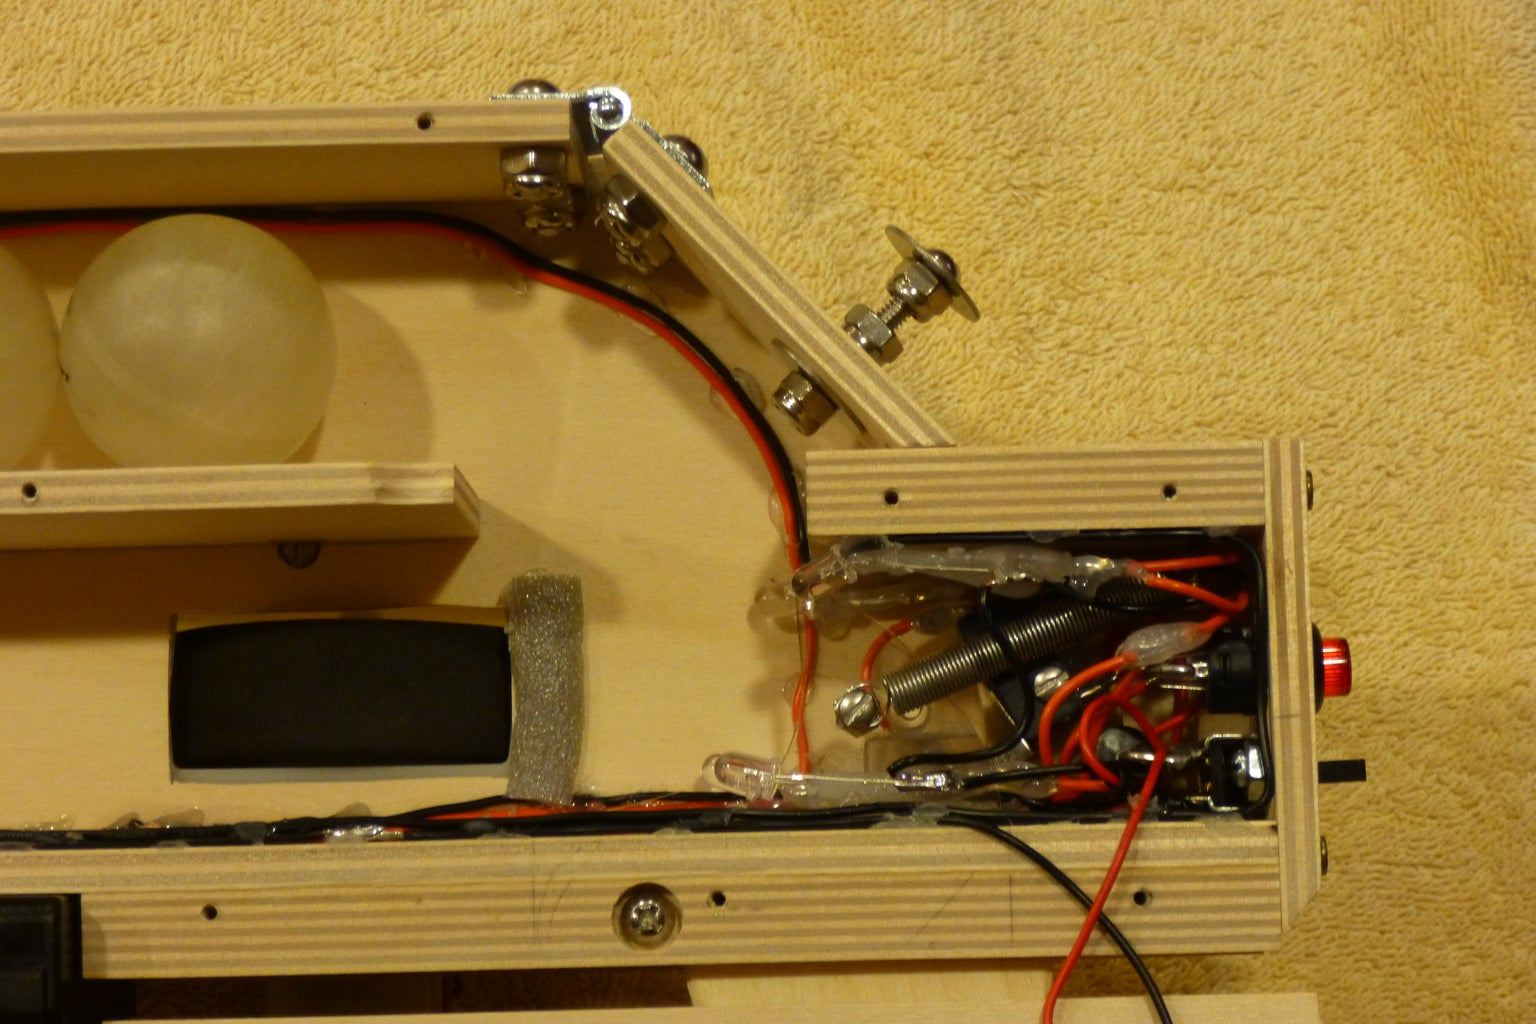 Add the Trigger and Motor Switches